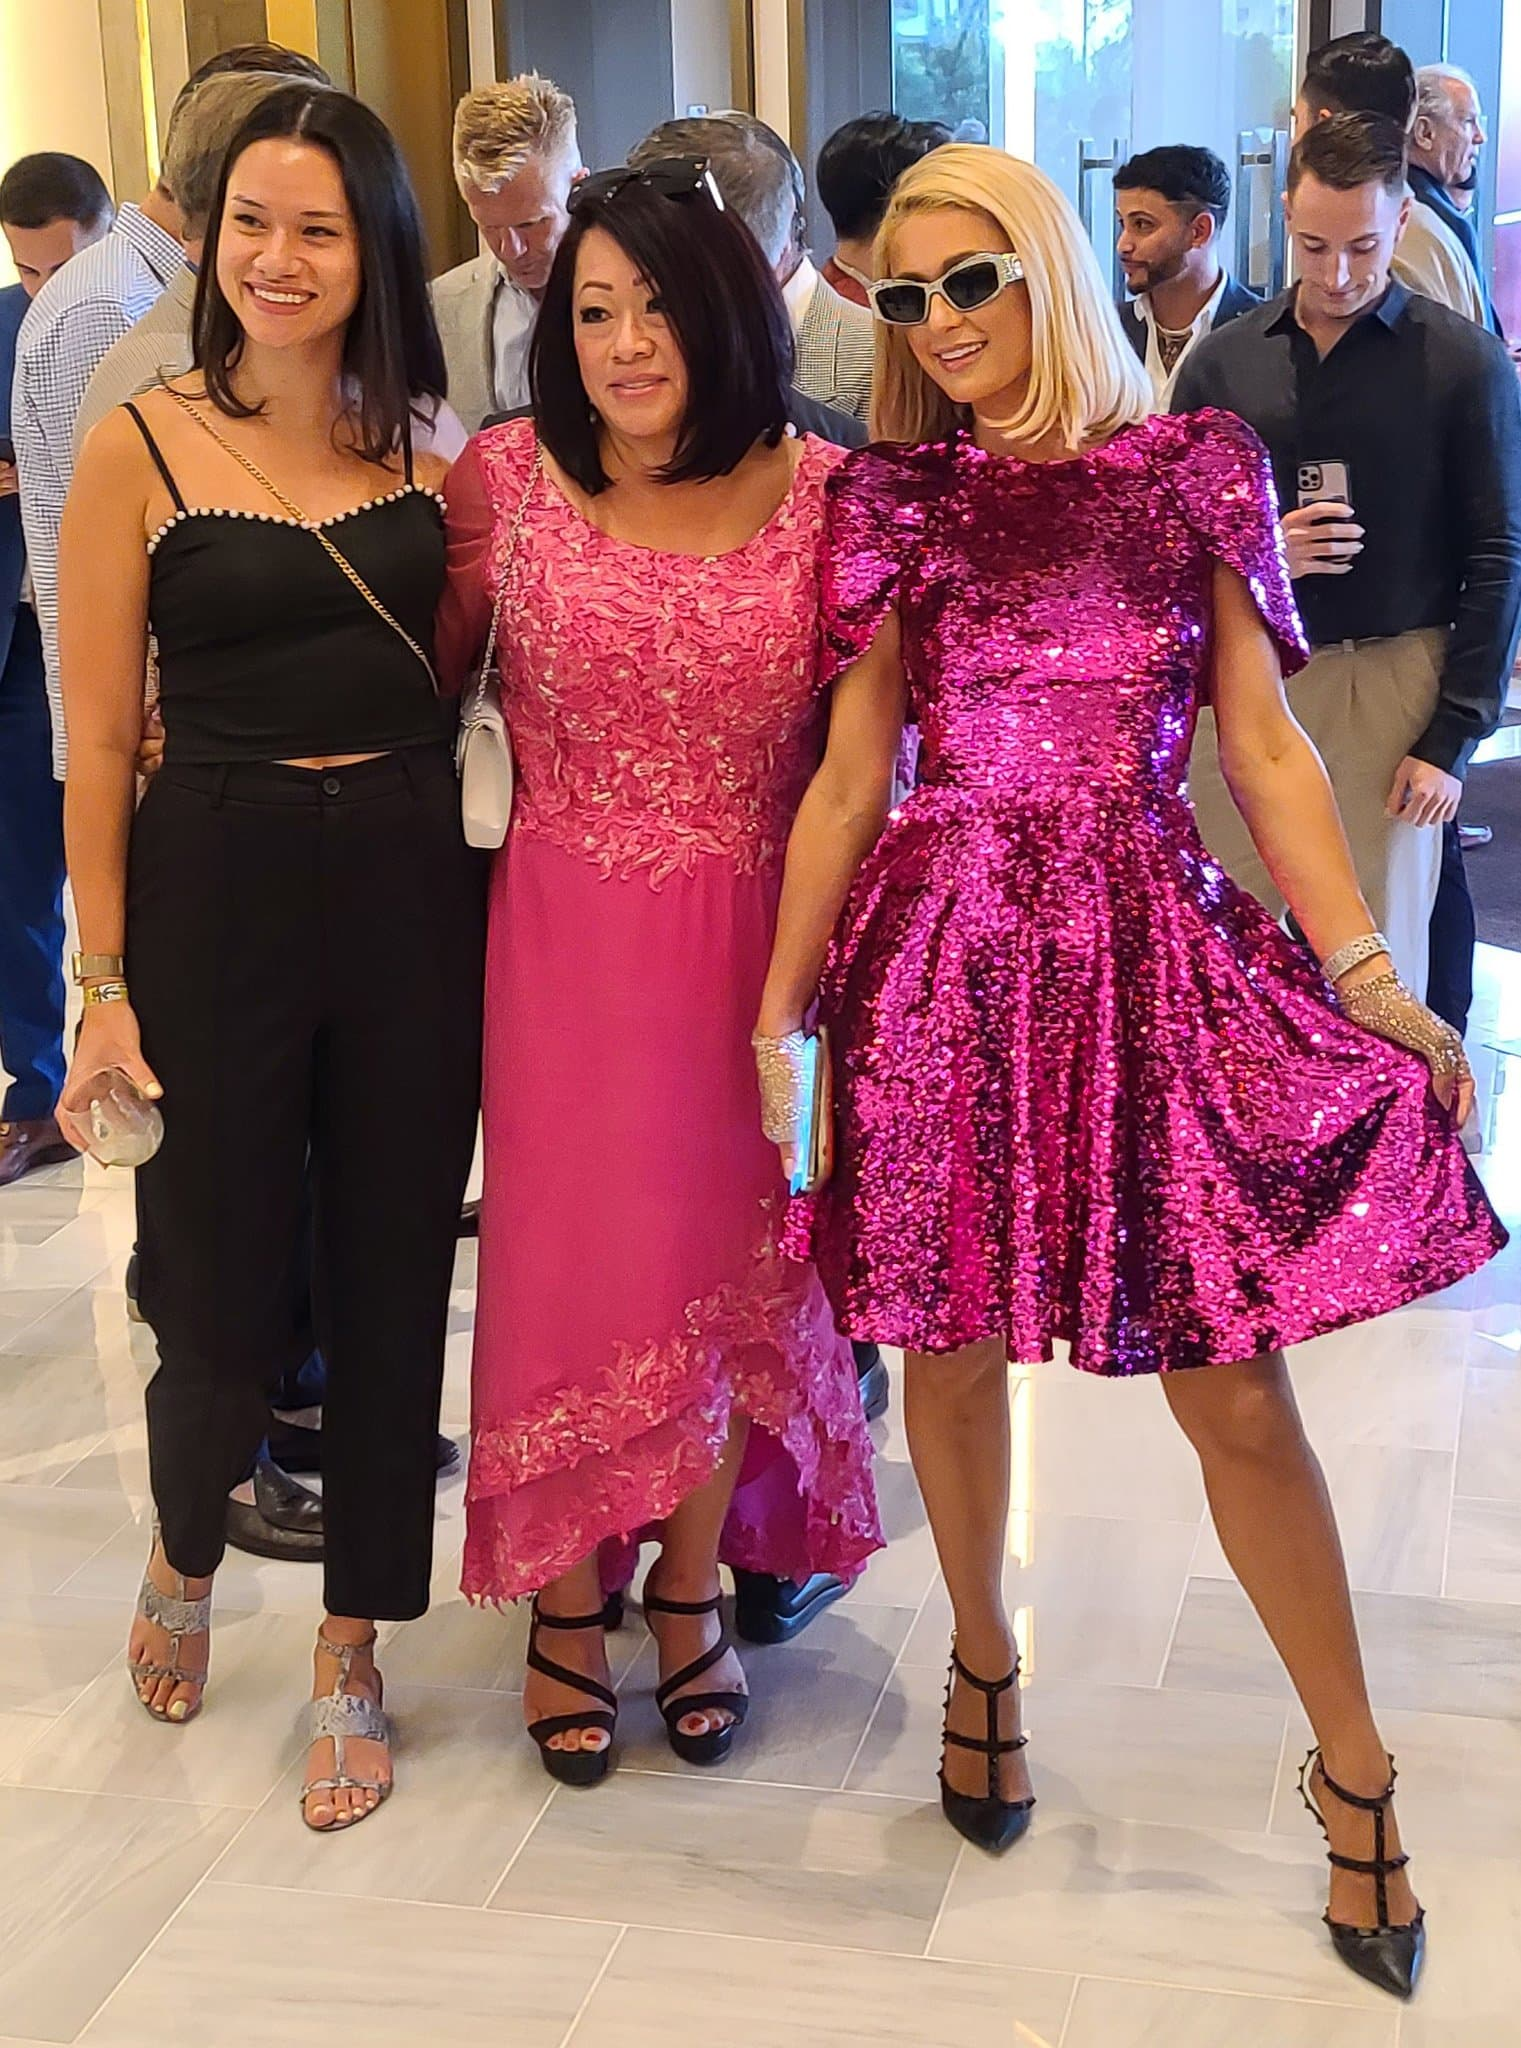 Paris Hilton poses with fans in a fuchsia pink sequined mini dress from Pamella Roland